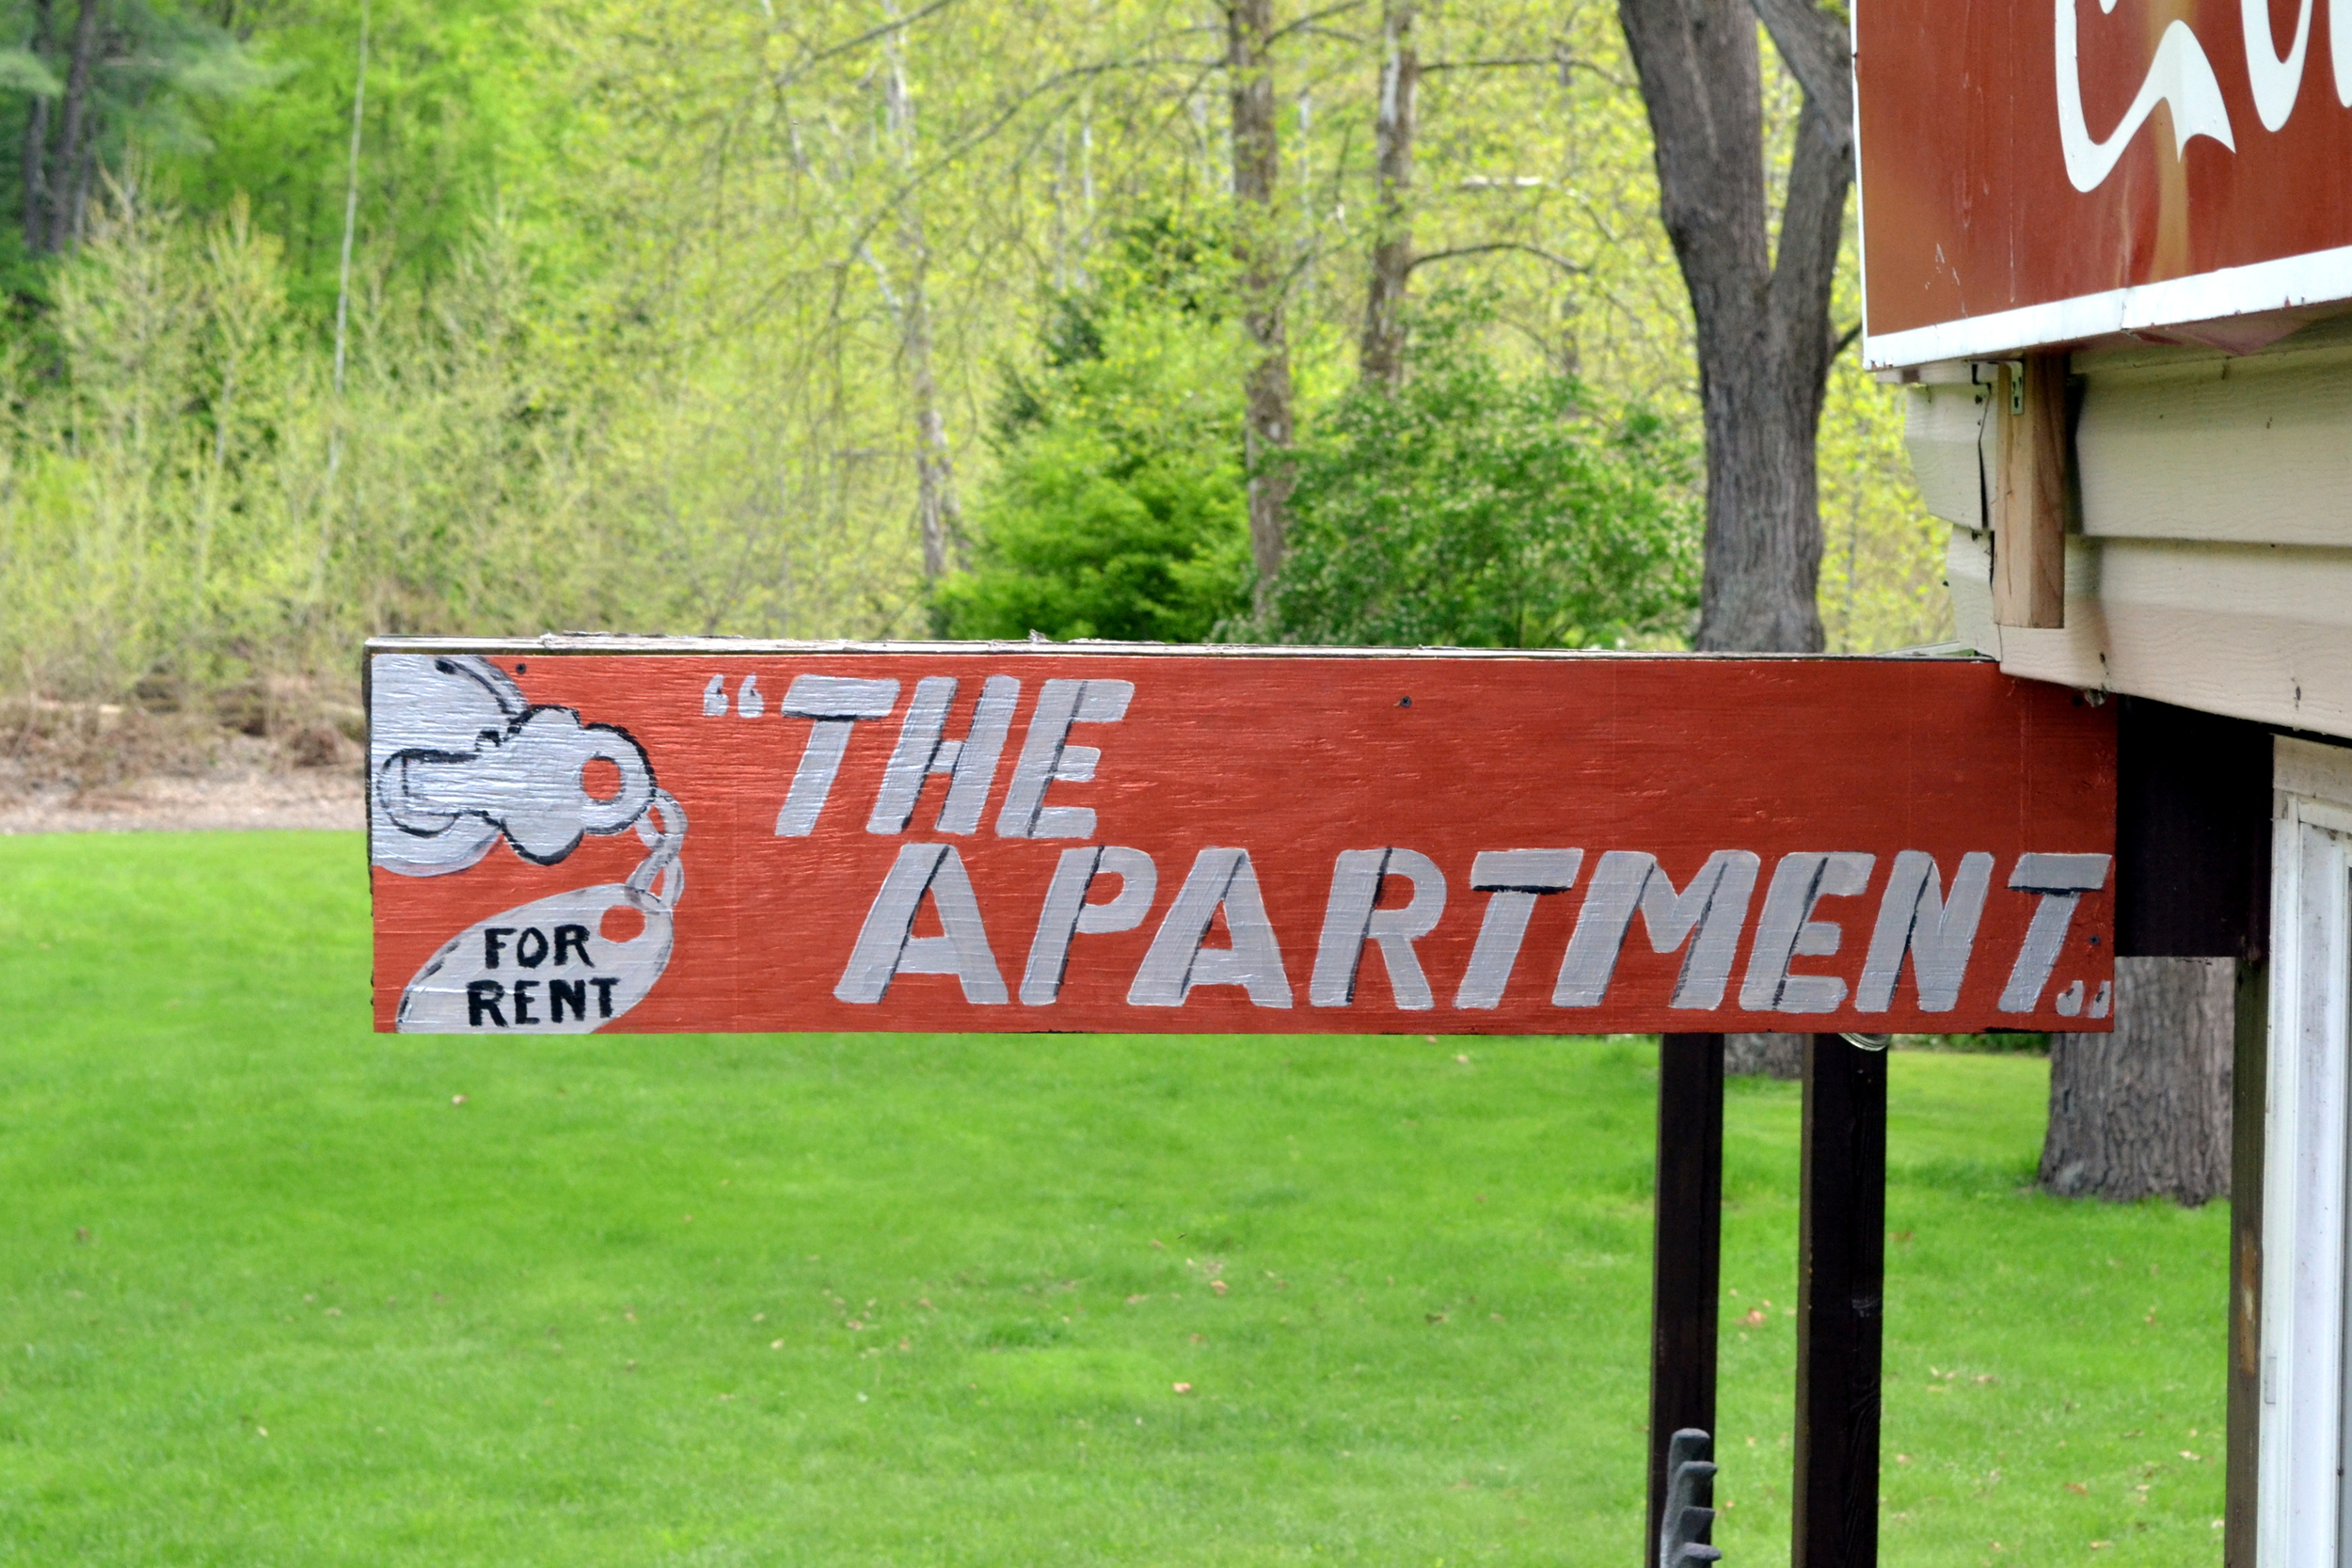 When on a long hike or bicycling trip if you need a place to rest for the night you can rent the apartment.